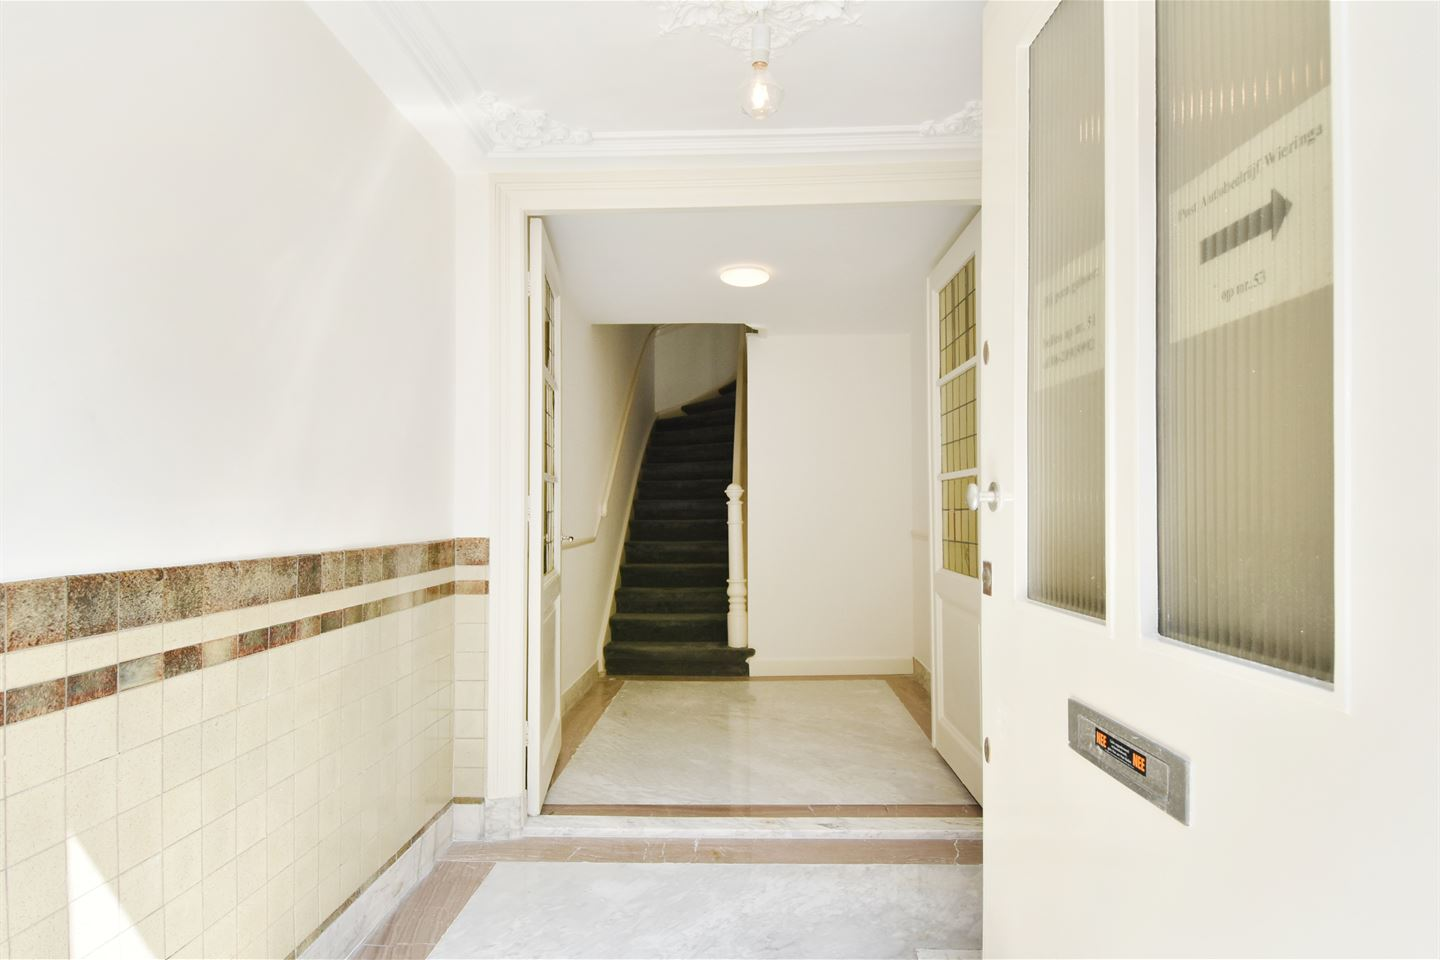 View photo 2 of Balistraat 53 a